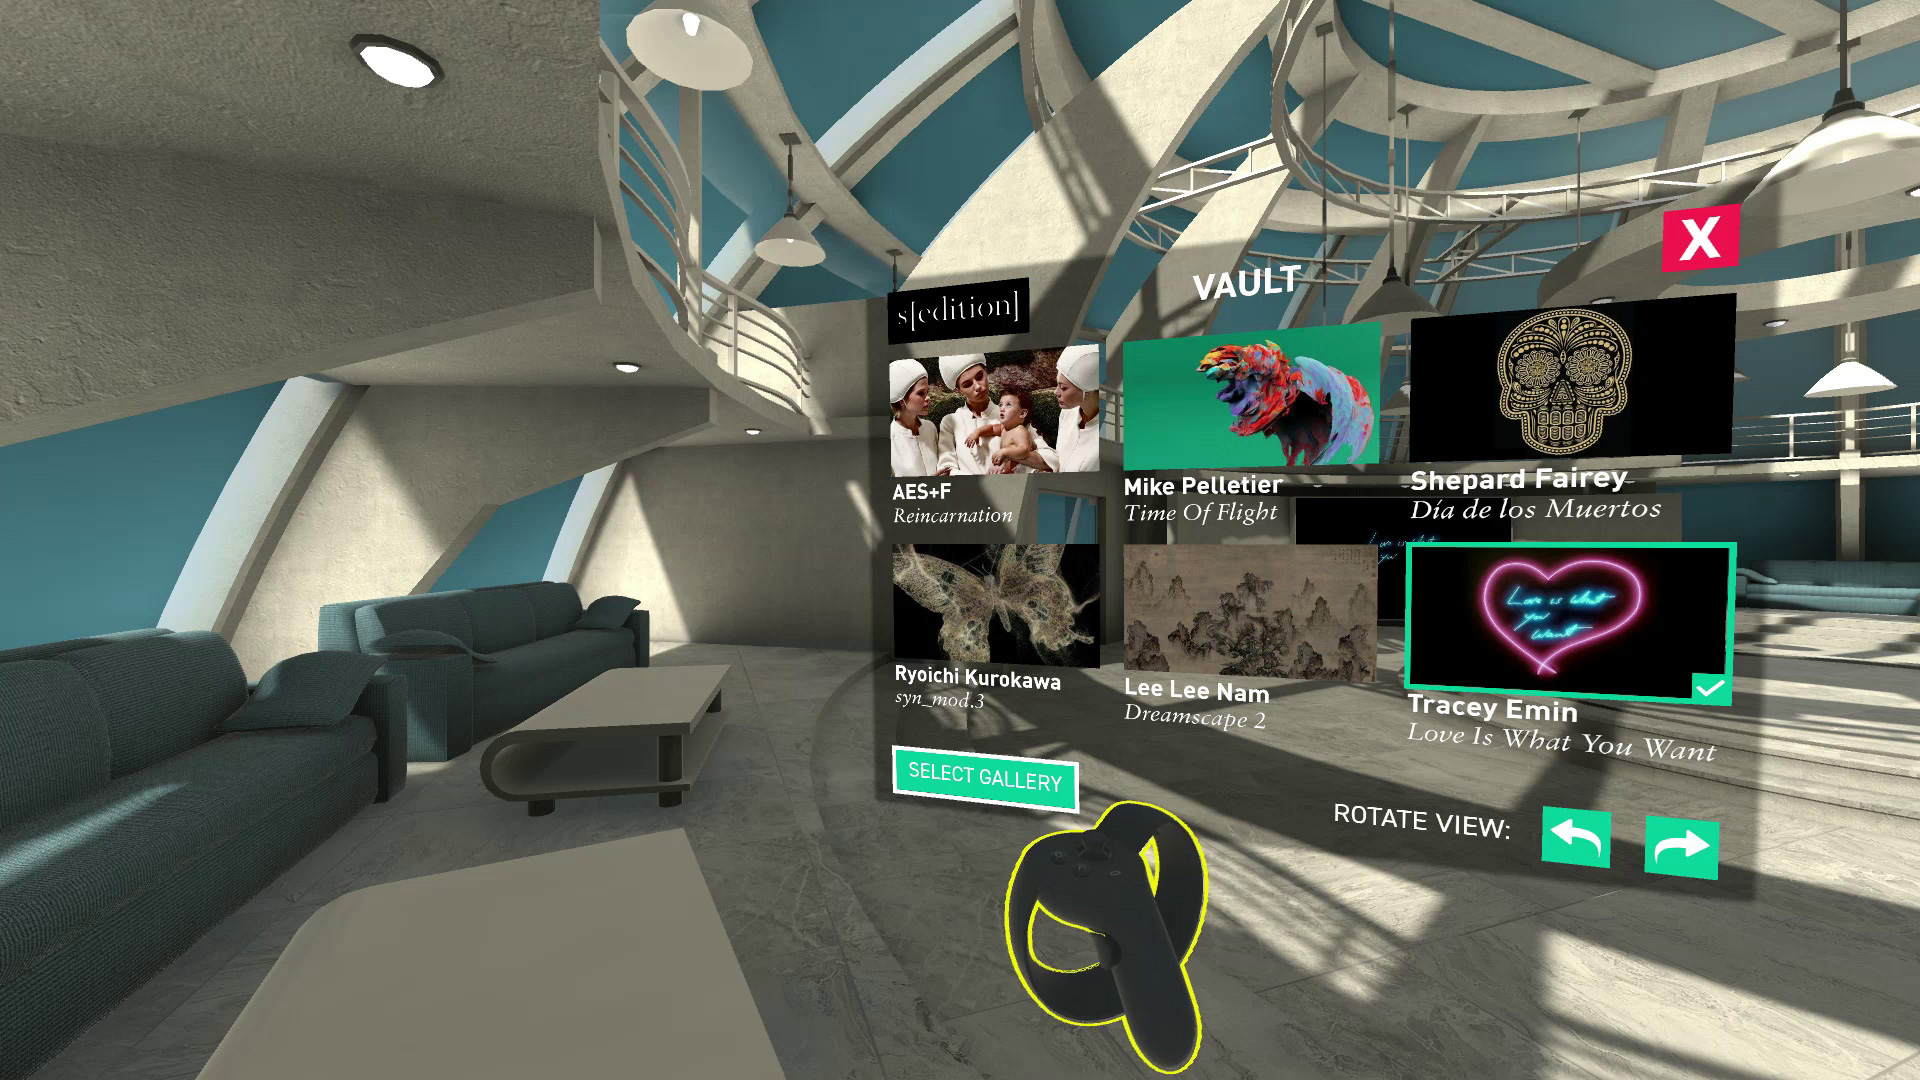 Screenshot from Sedition VR showroom environment showing navigation UI